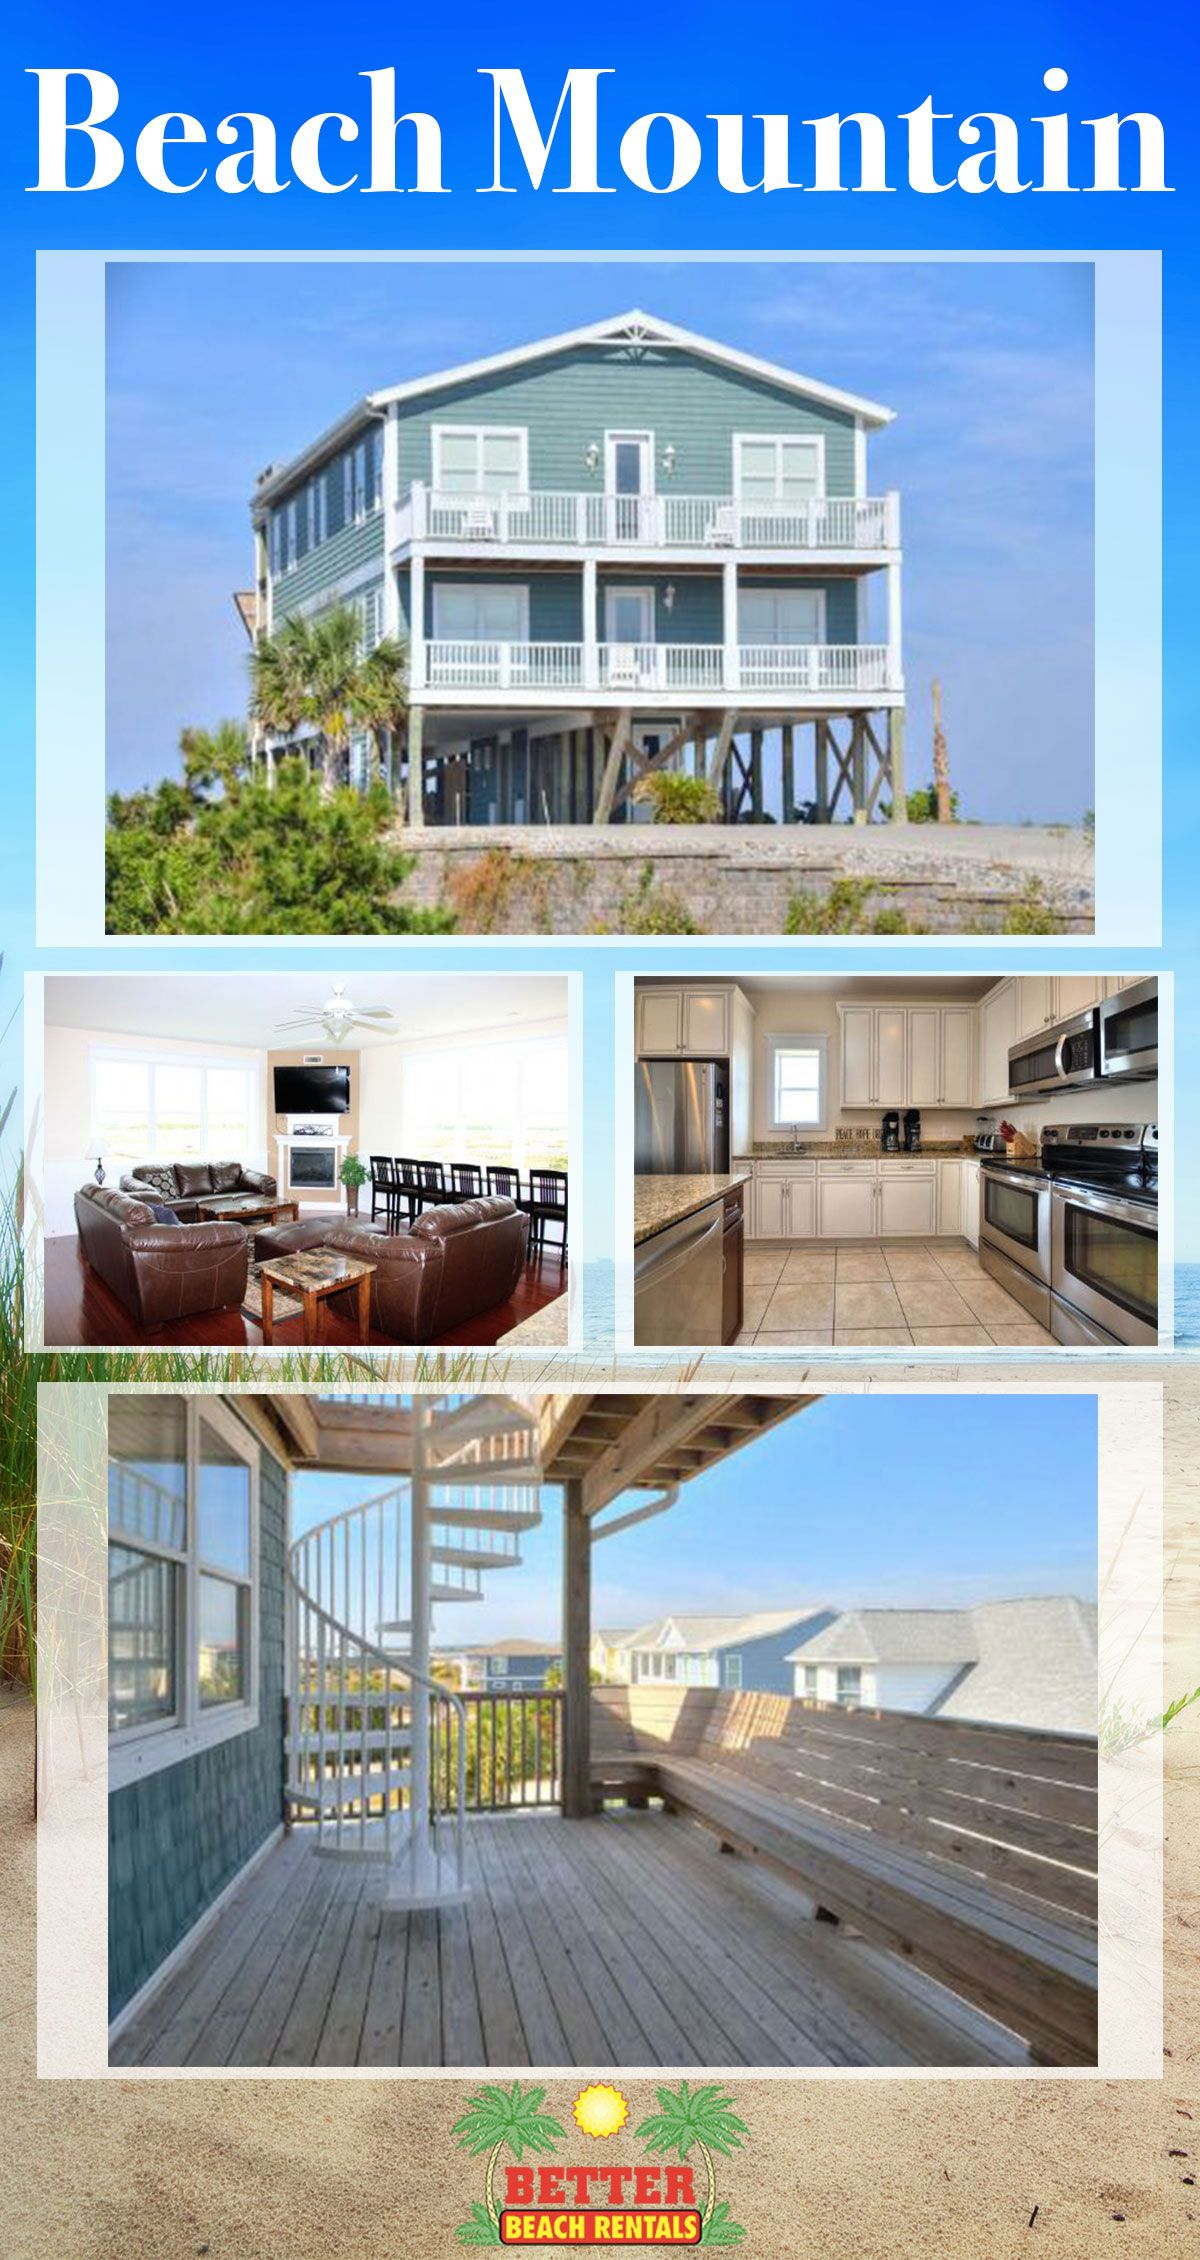 This Home Is Perfect For All Occasions With 10 Bedrooms And Room For 22 Guests This Is A Great Oak Is Island Vacation Rentals Vacation Family Beach Vacation